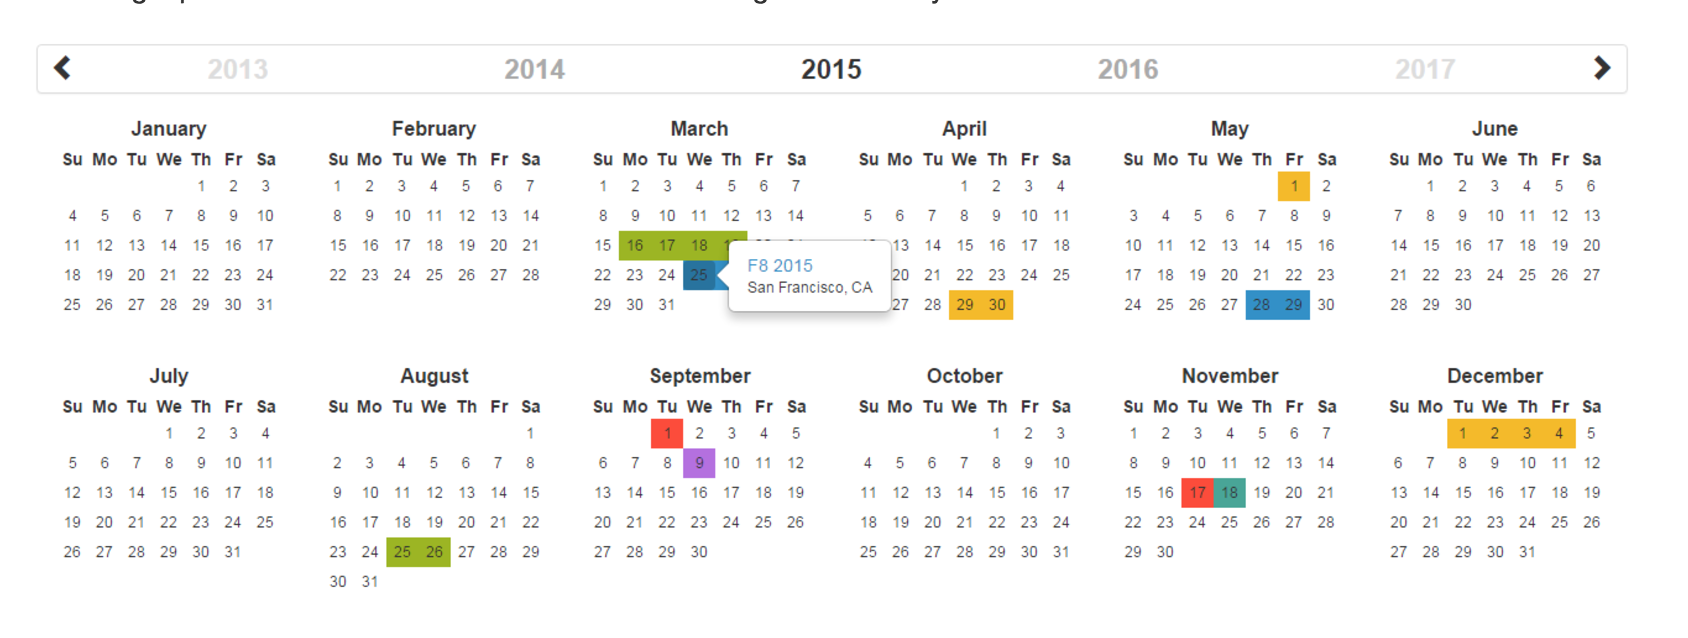 This calendar widget might look nice, but is it valuable enough to merit inclusion?